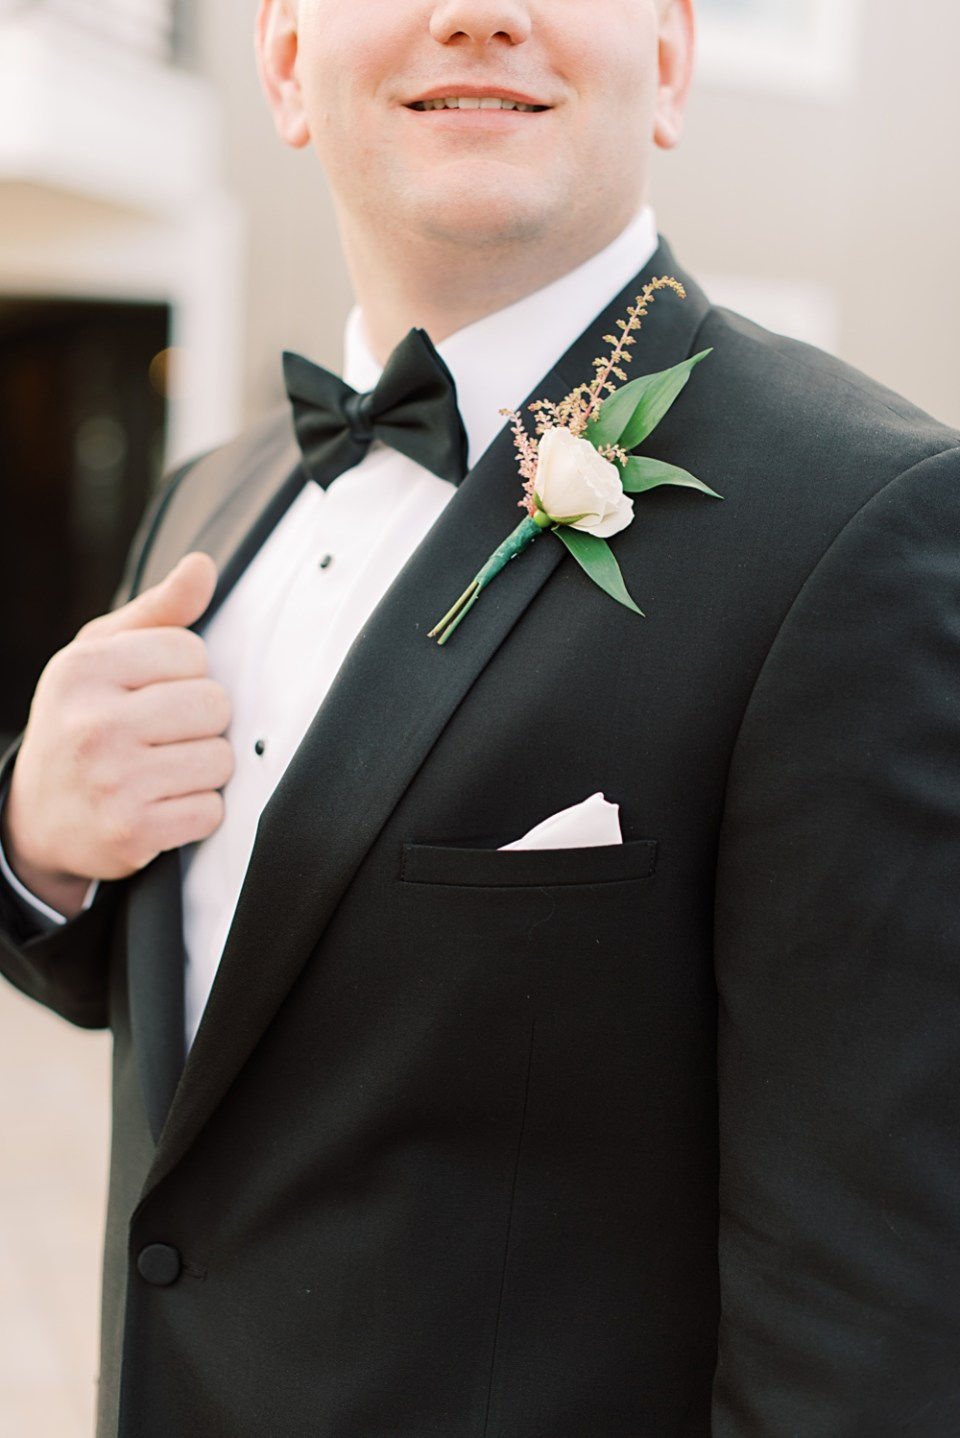 groom details | new jersey wedding photographer | sarah canning photography